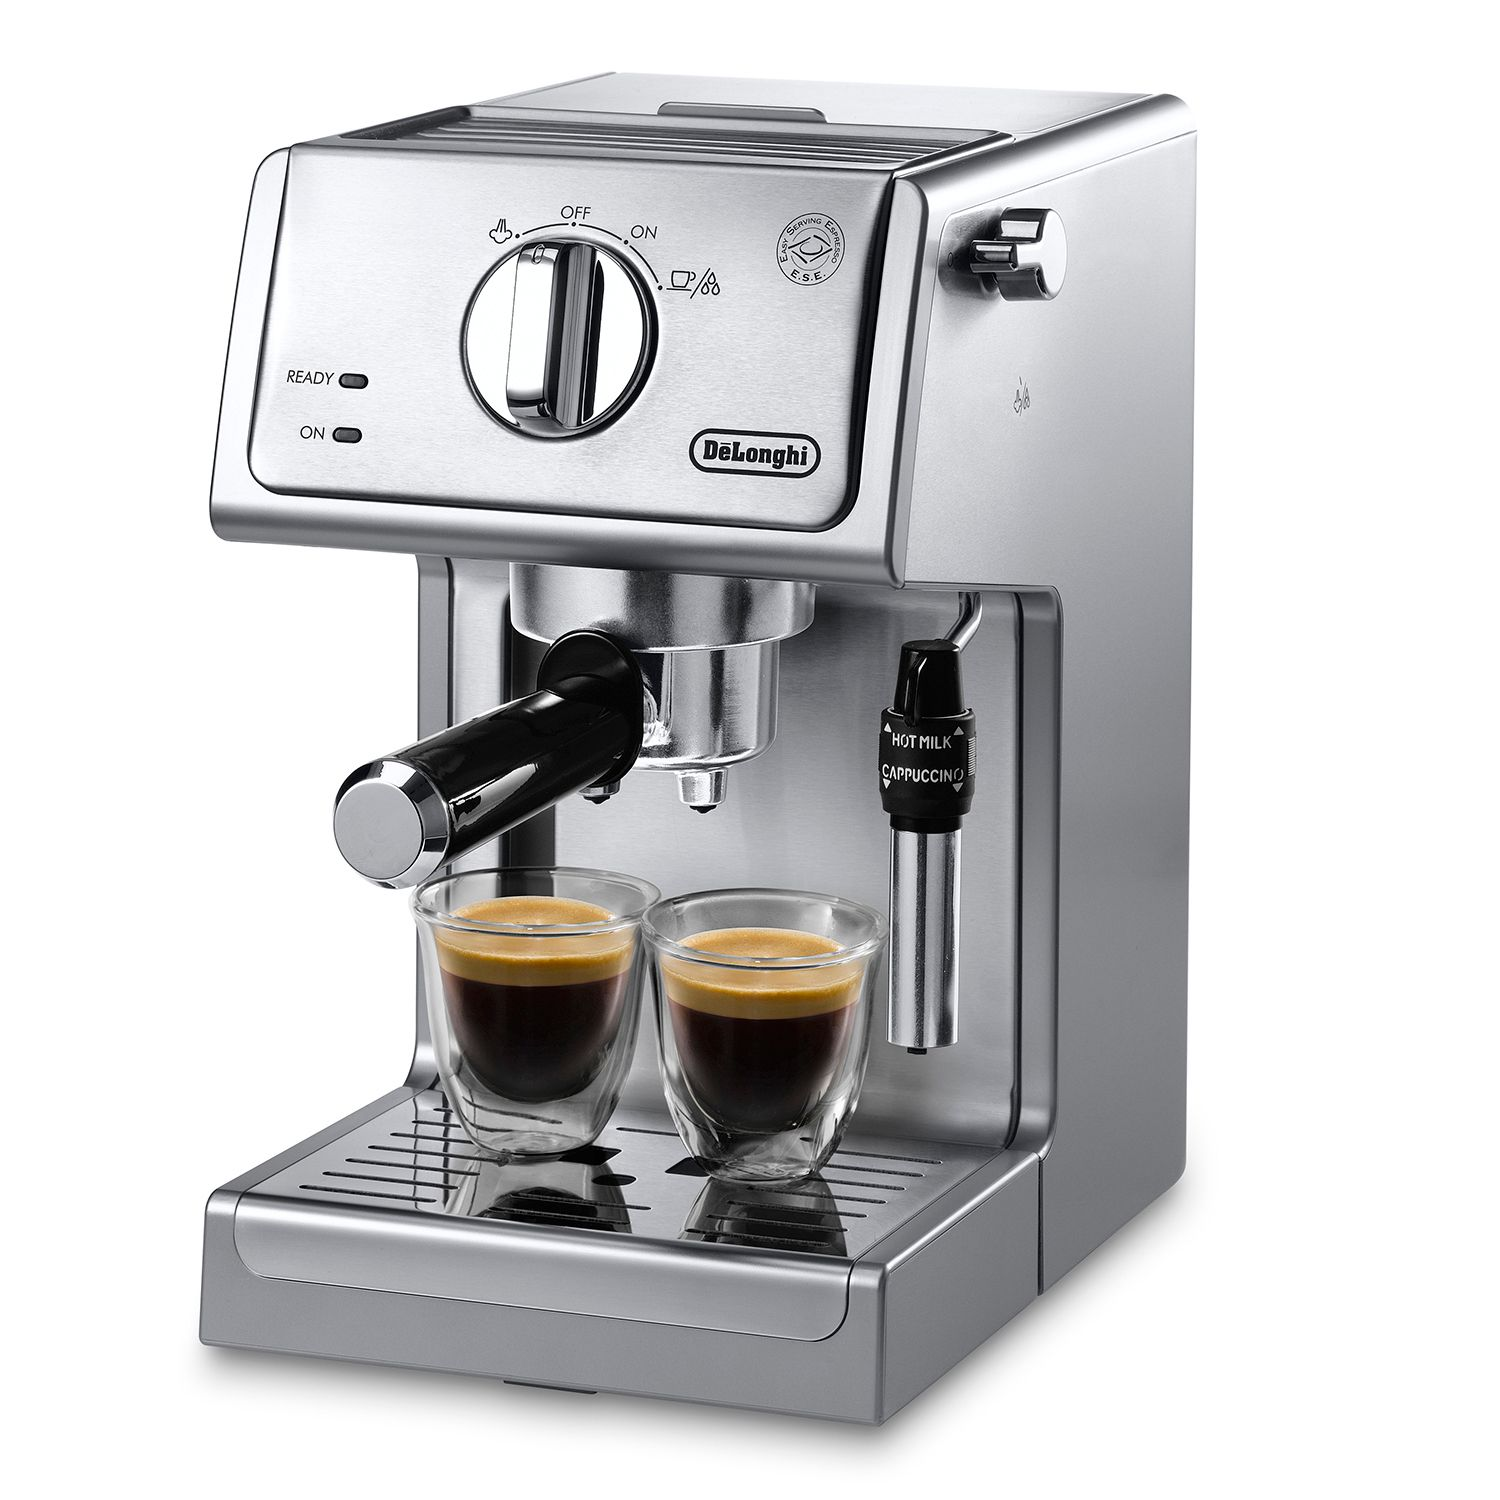 Caffe Figaro Coffee Espresso Machine